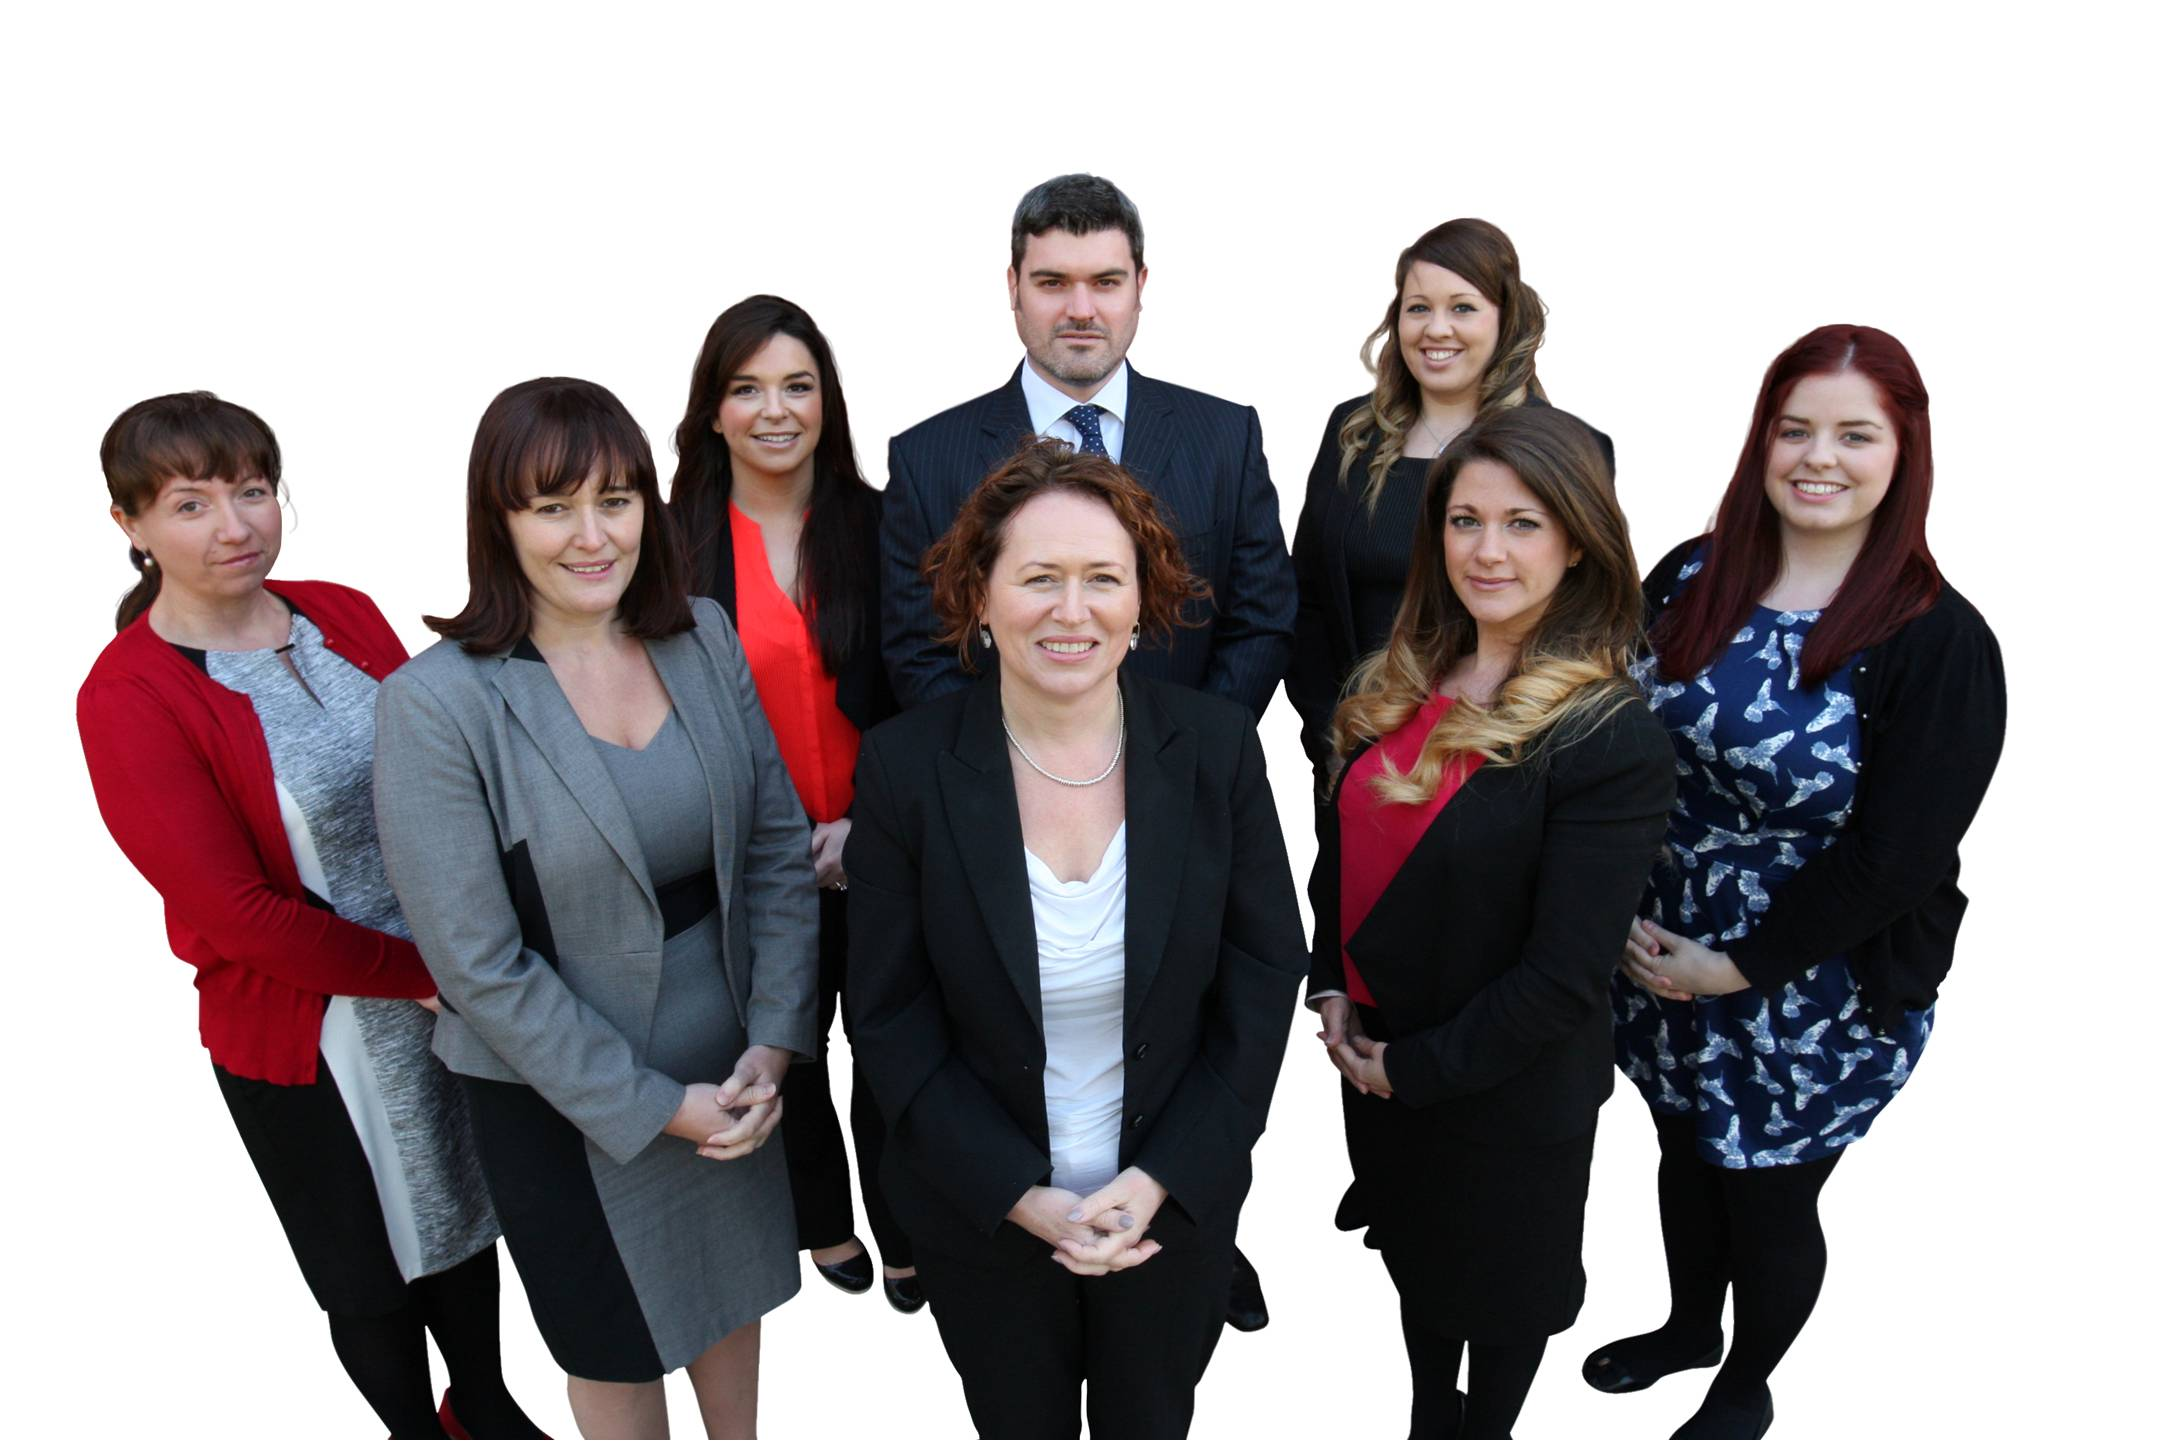 Our Retained Products expert team. We deal with medical negligence claims arising from Retained Products.